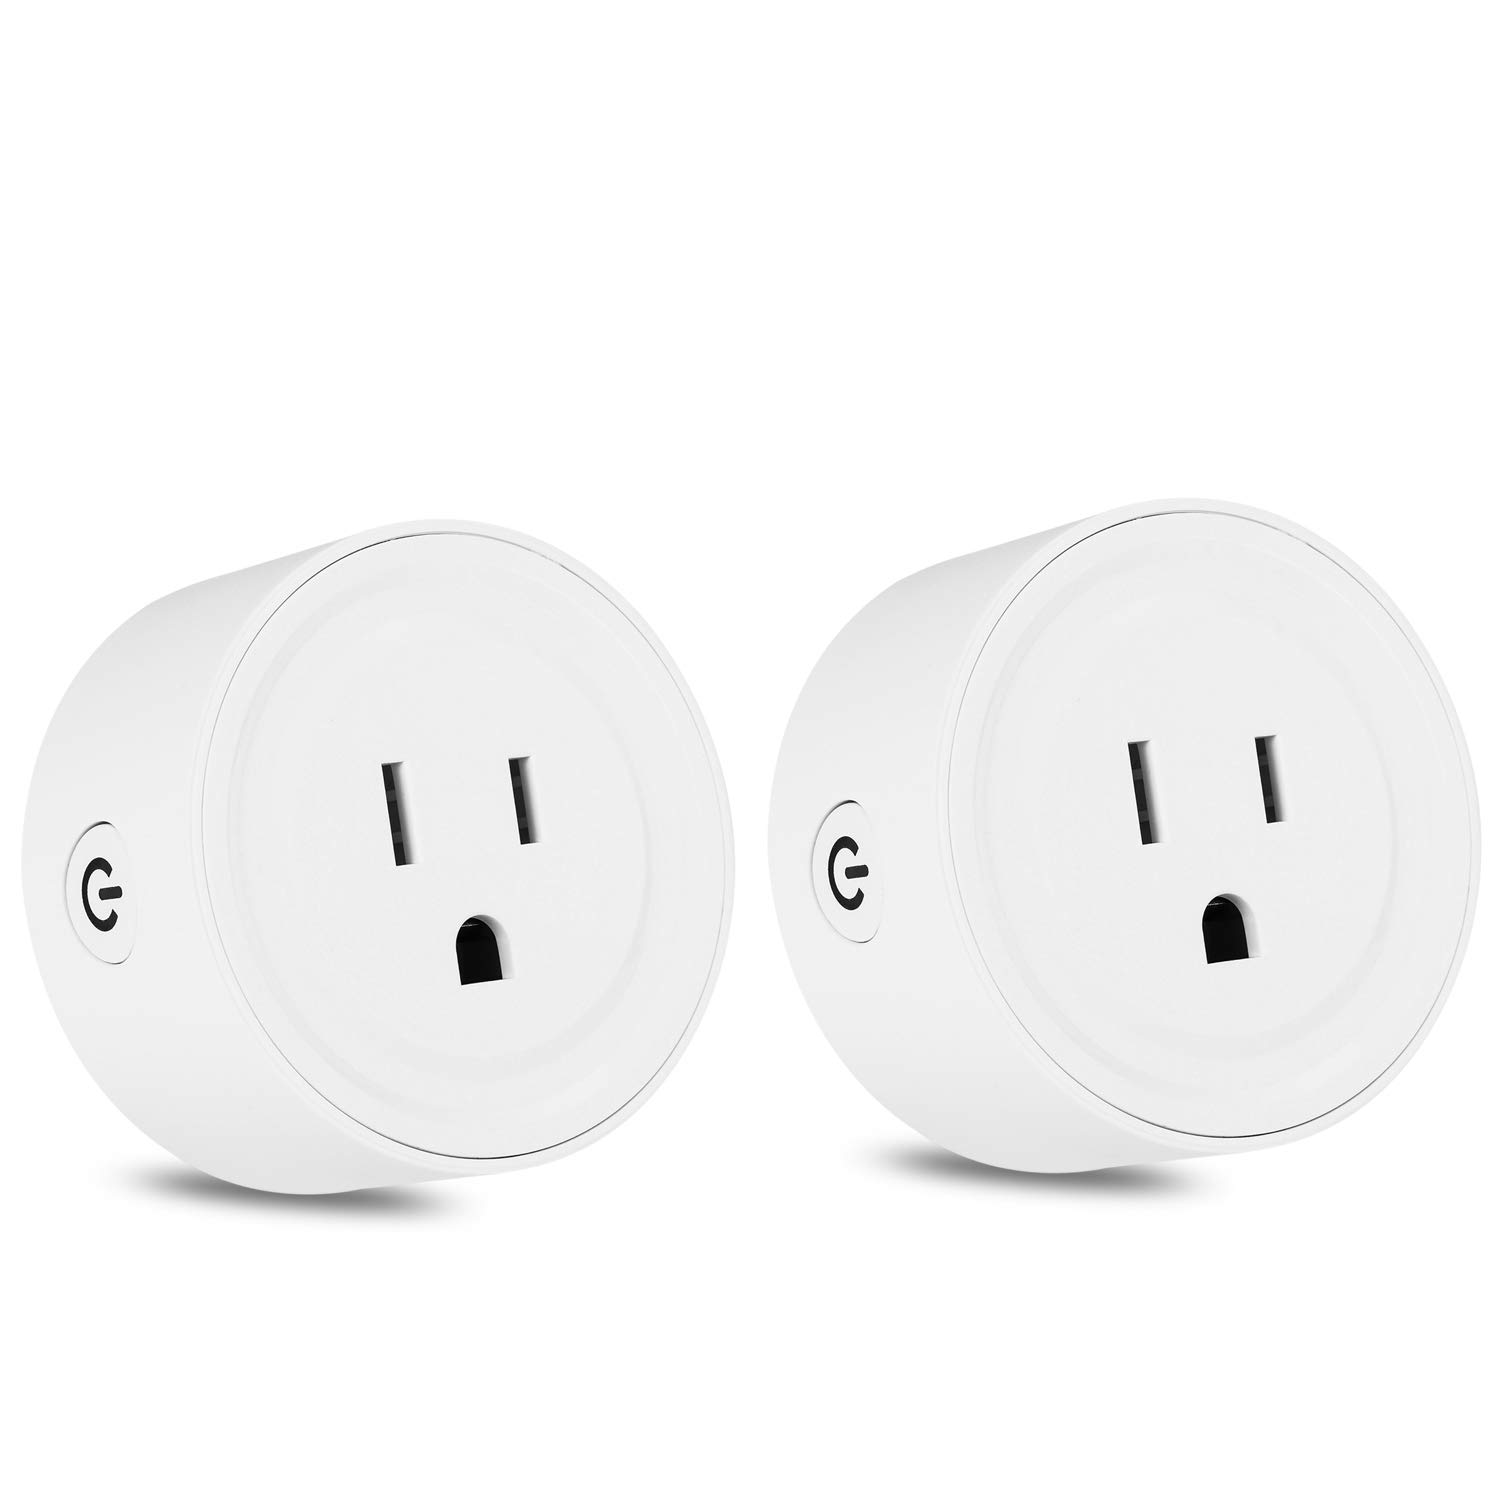 Wifi Smart Plug Mini Socket Outlet Power Switch Works With Amazon Alex Google Home Remote Control By App No Hub Required Time Fuction(2 Packs)